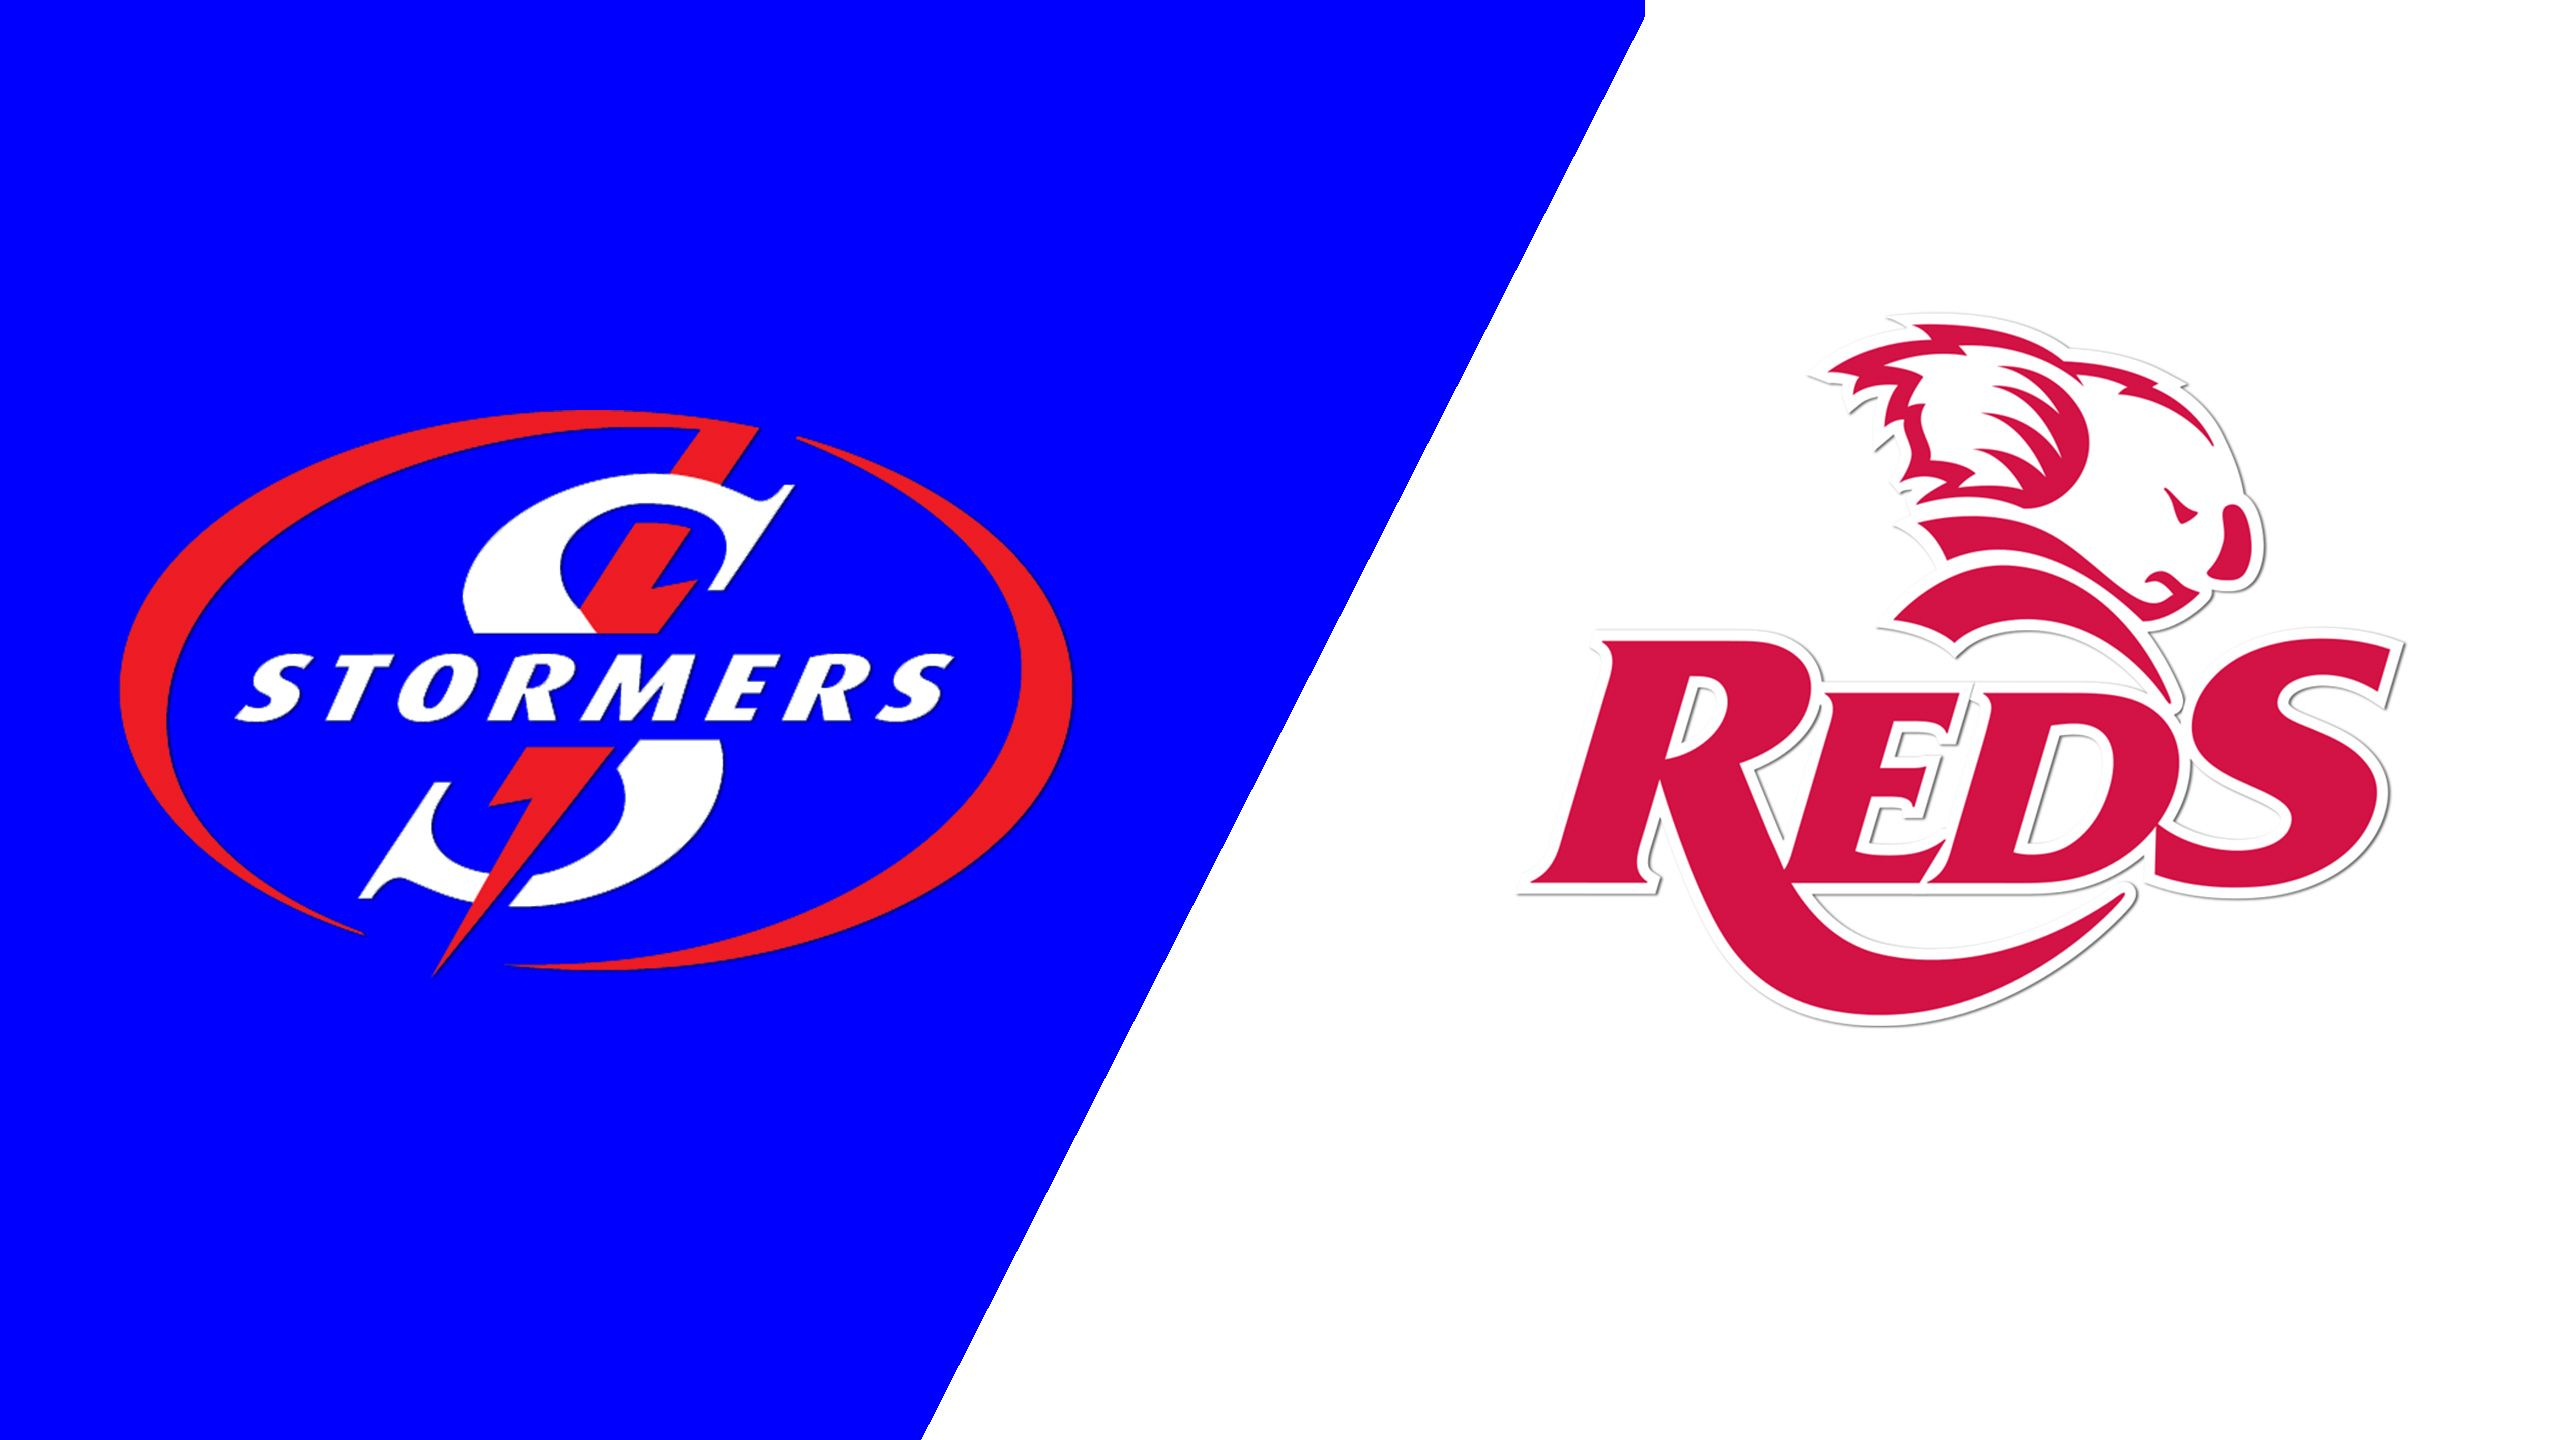 Stormers vs. Reds (Super Rugby)